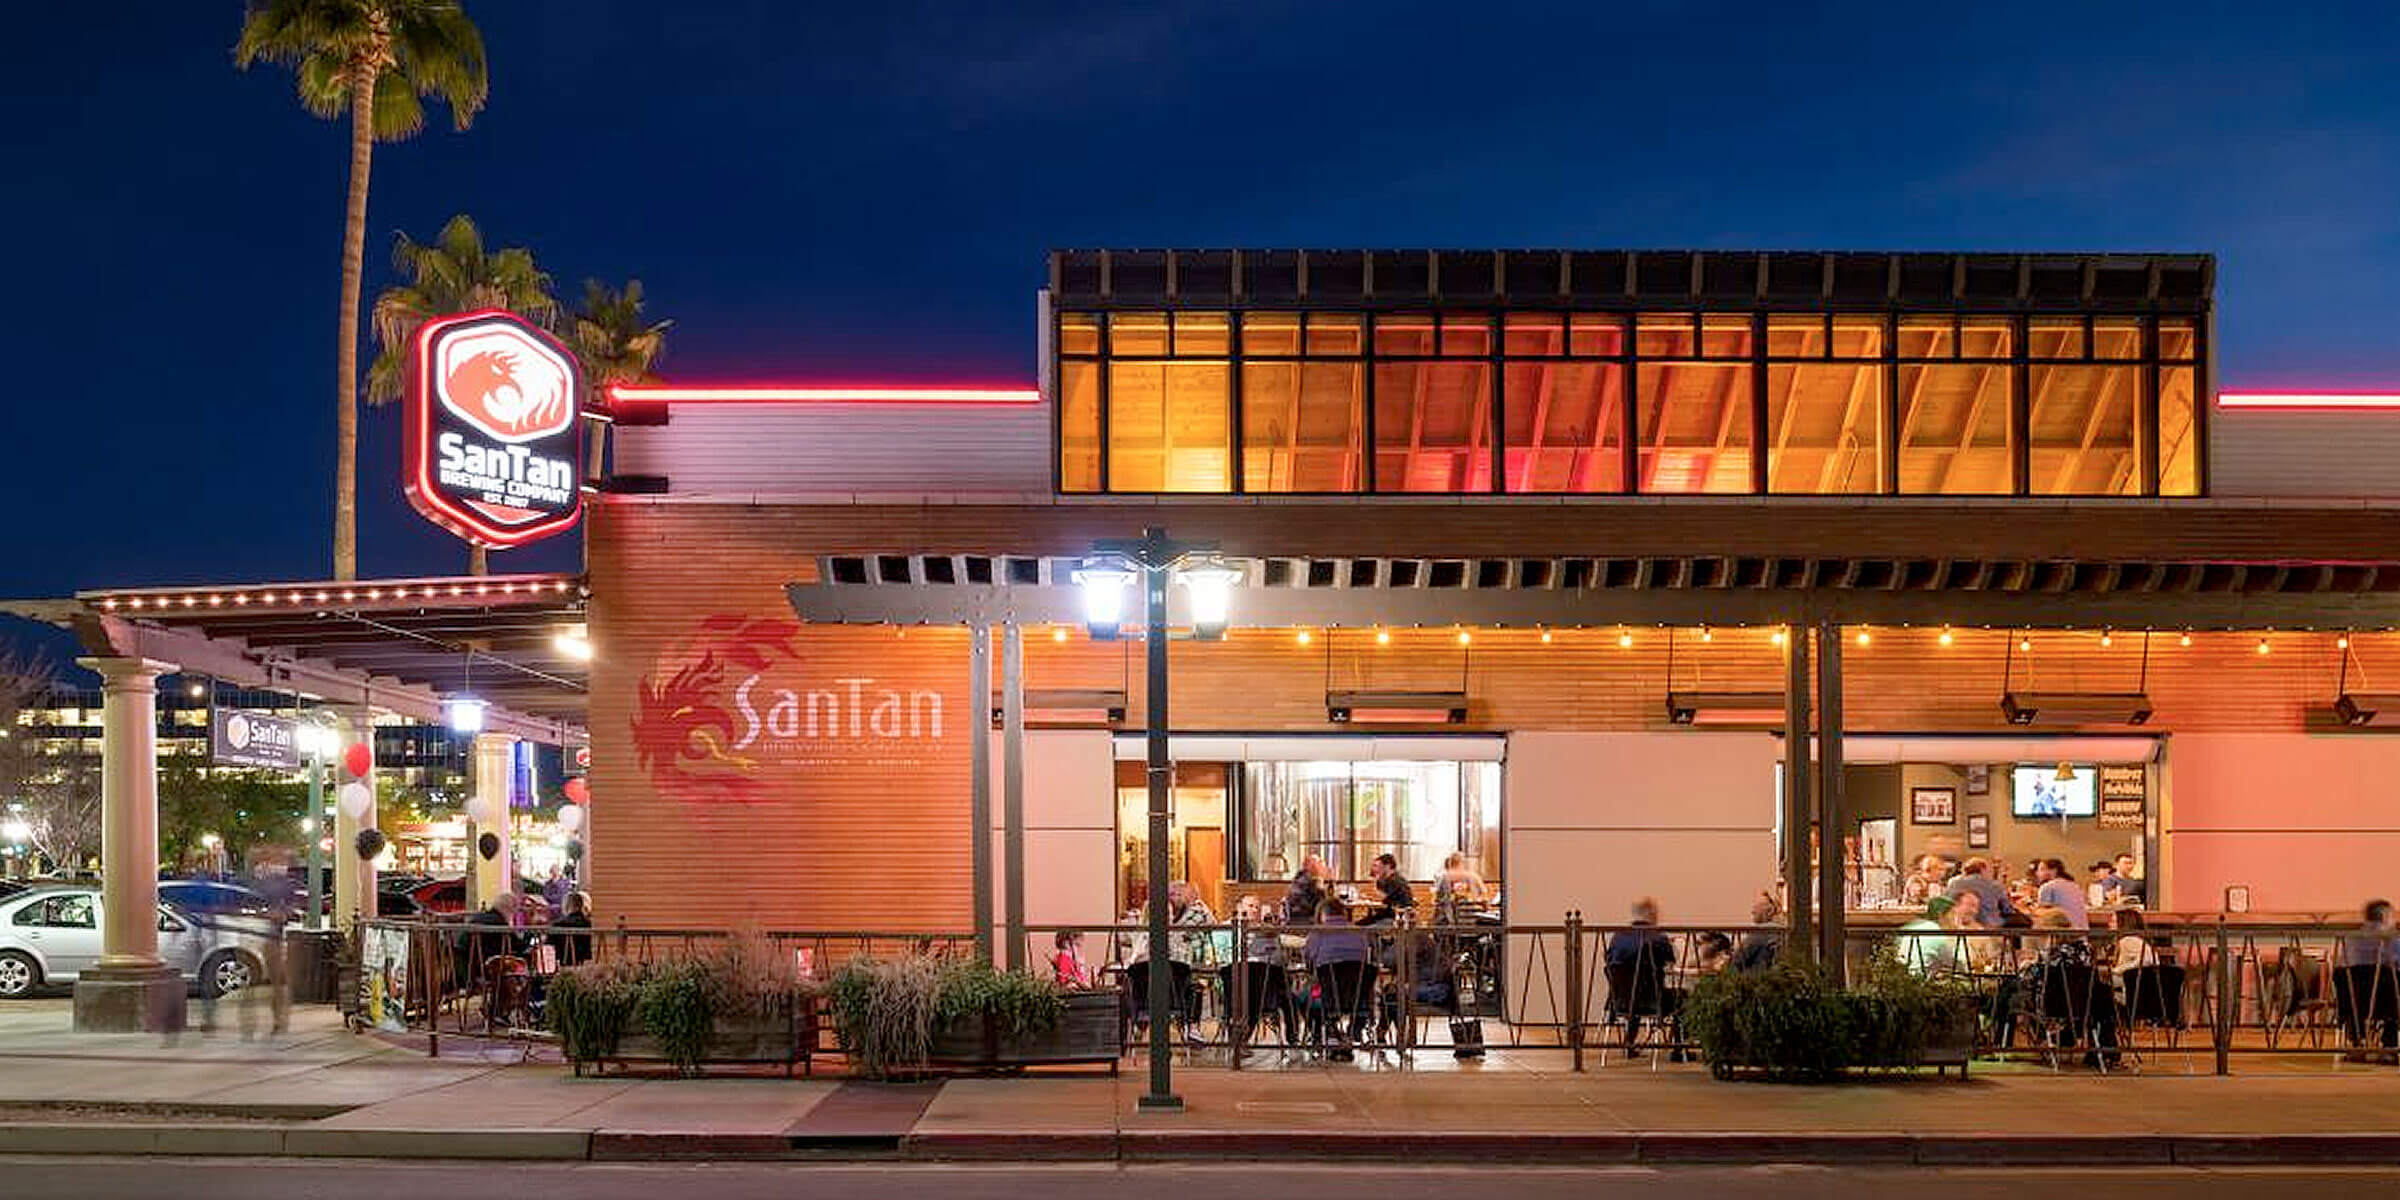 Outside the SanTan Brewing Company location in Downtown Chandler, Arizona